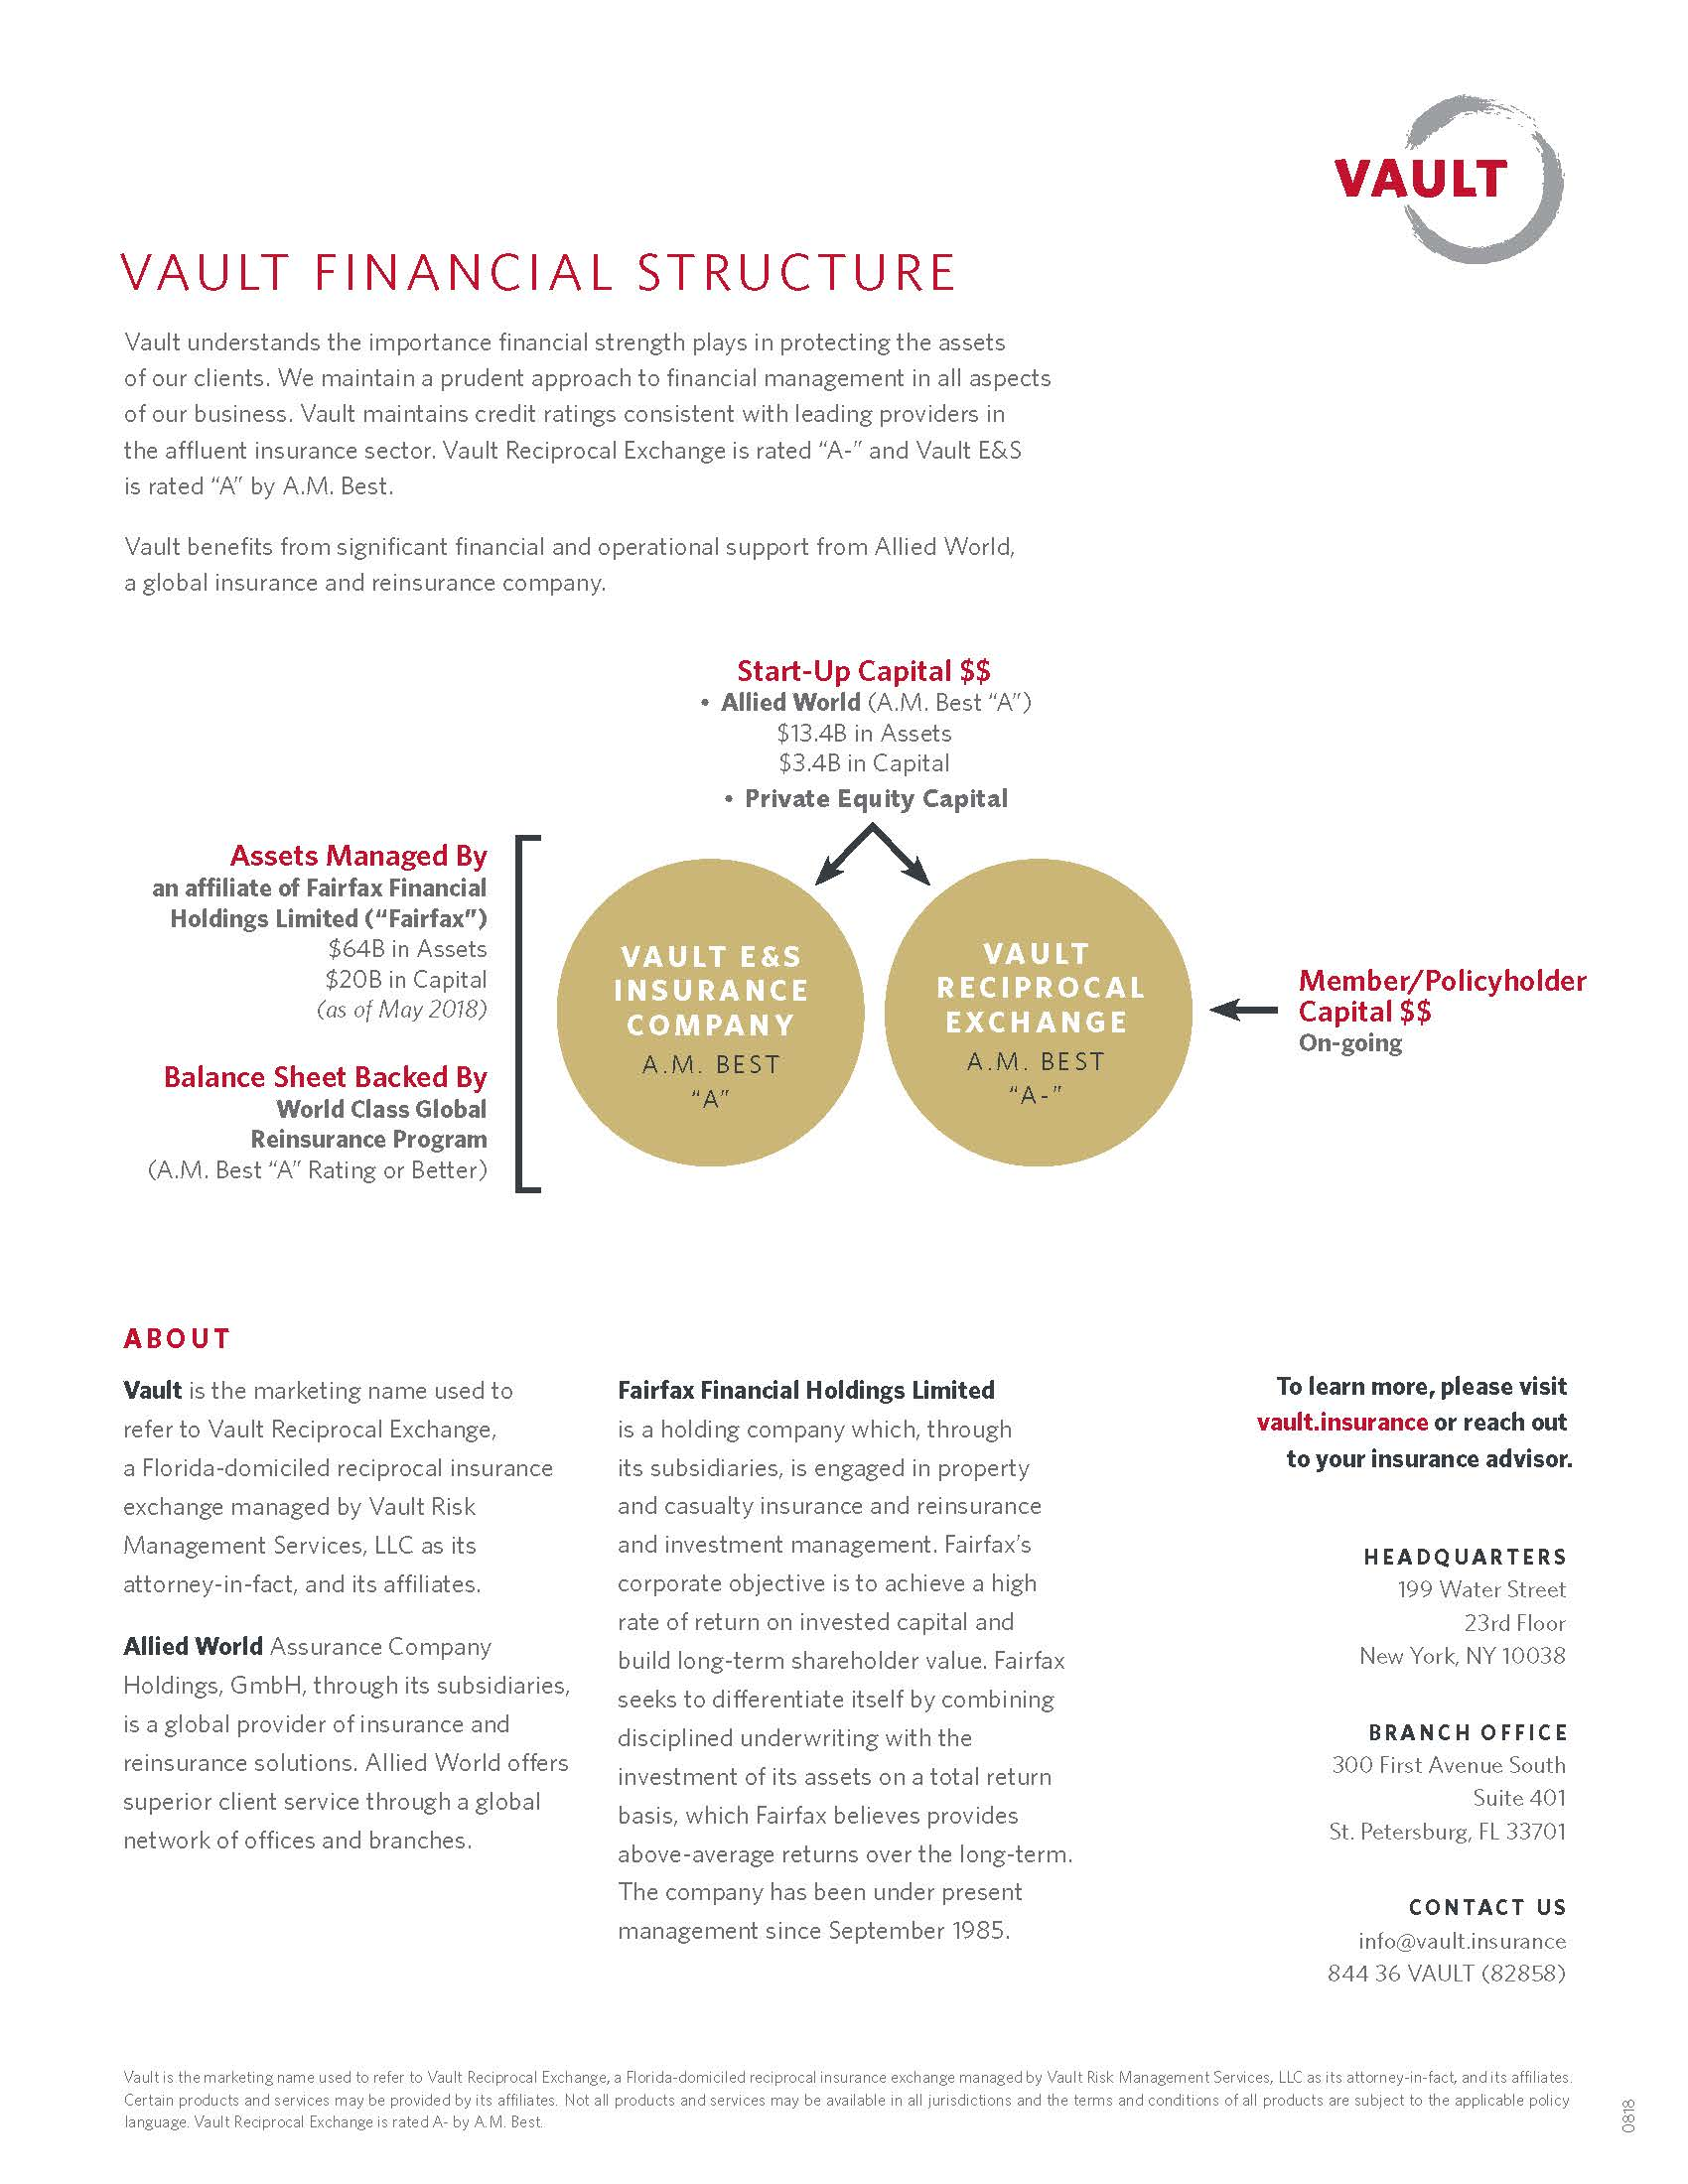 3 Vault-Financial Structure - Aug2018